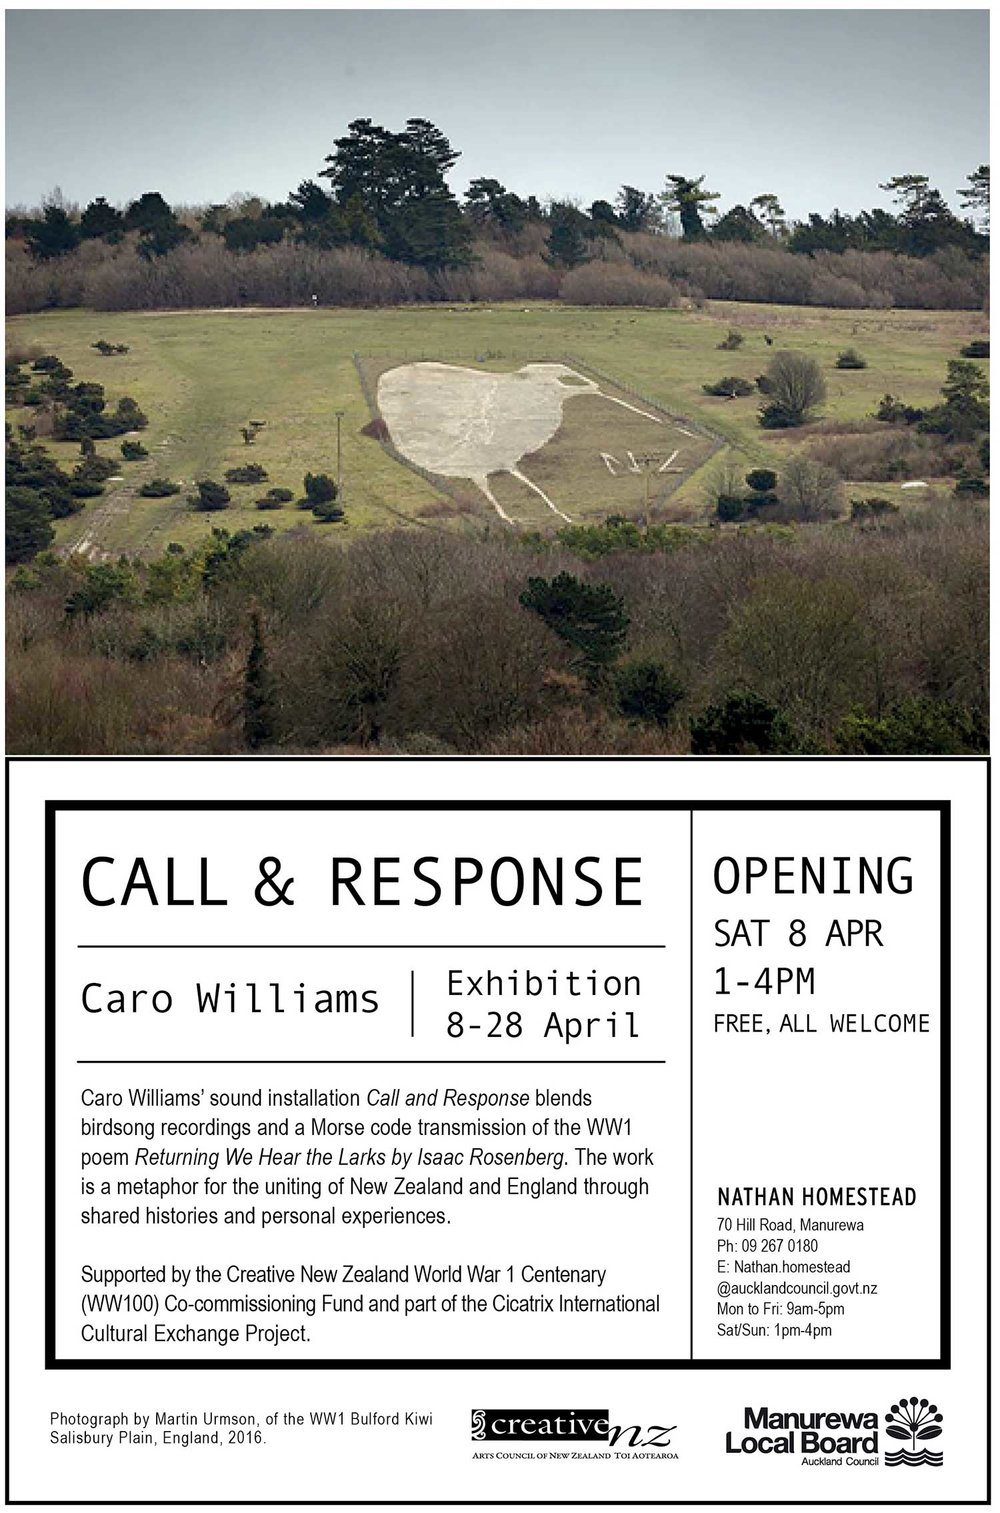 I am excited to be exhibiting my sound installation Call and Response in the gardens of the Nathan Homestead and preparing for the opening on Saturday afternoon.   Call and Response links the military landscapes of two far flung countries through birdsong and poetry. The dawn chorus recordings from New Zealand were made at Fort Takapuna Historic Reserve, Auckland and those from England at the site of the Bulford Kiwi on Salisbury Plain during my recent artist residency. The giant Kiwi, carved into the chalk by New Zealand troops impatient to return home at the end of the First World War, remains perfectly preserved today.